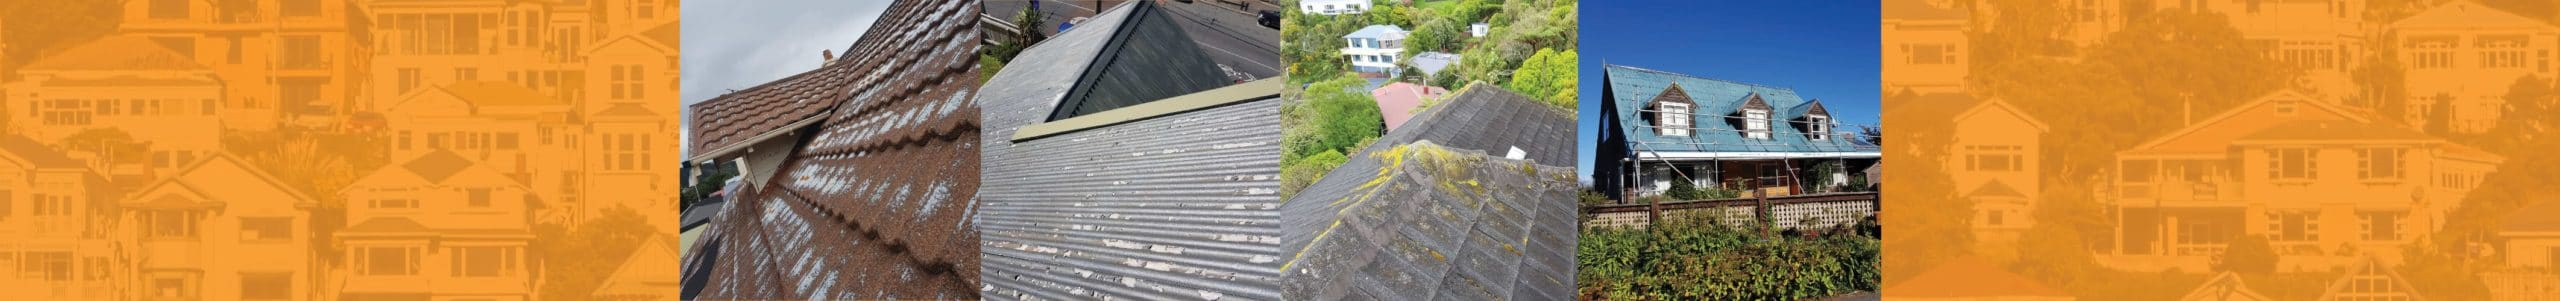 Roof Repairs Painting Insulation Wellington Paul